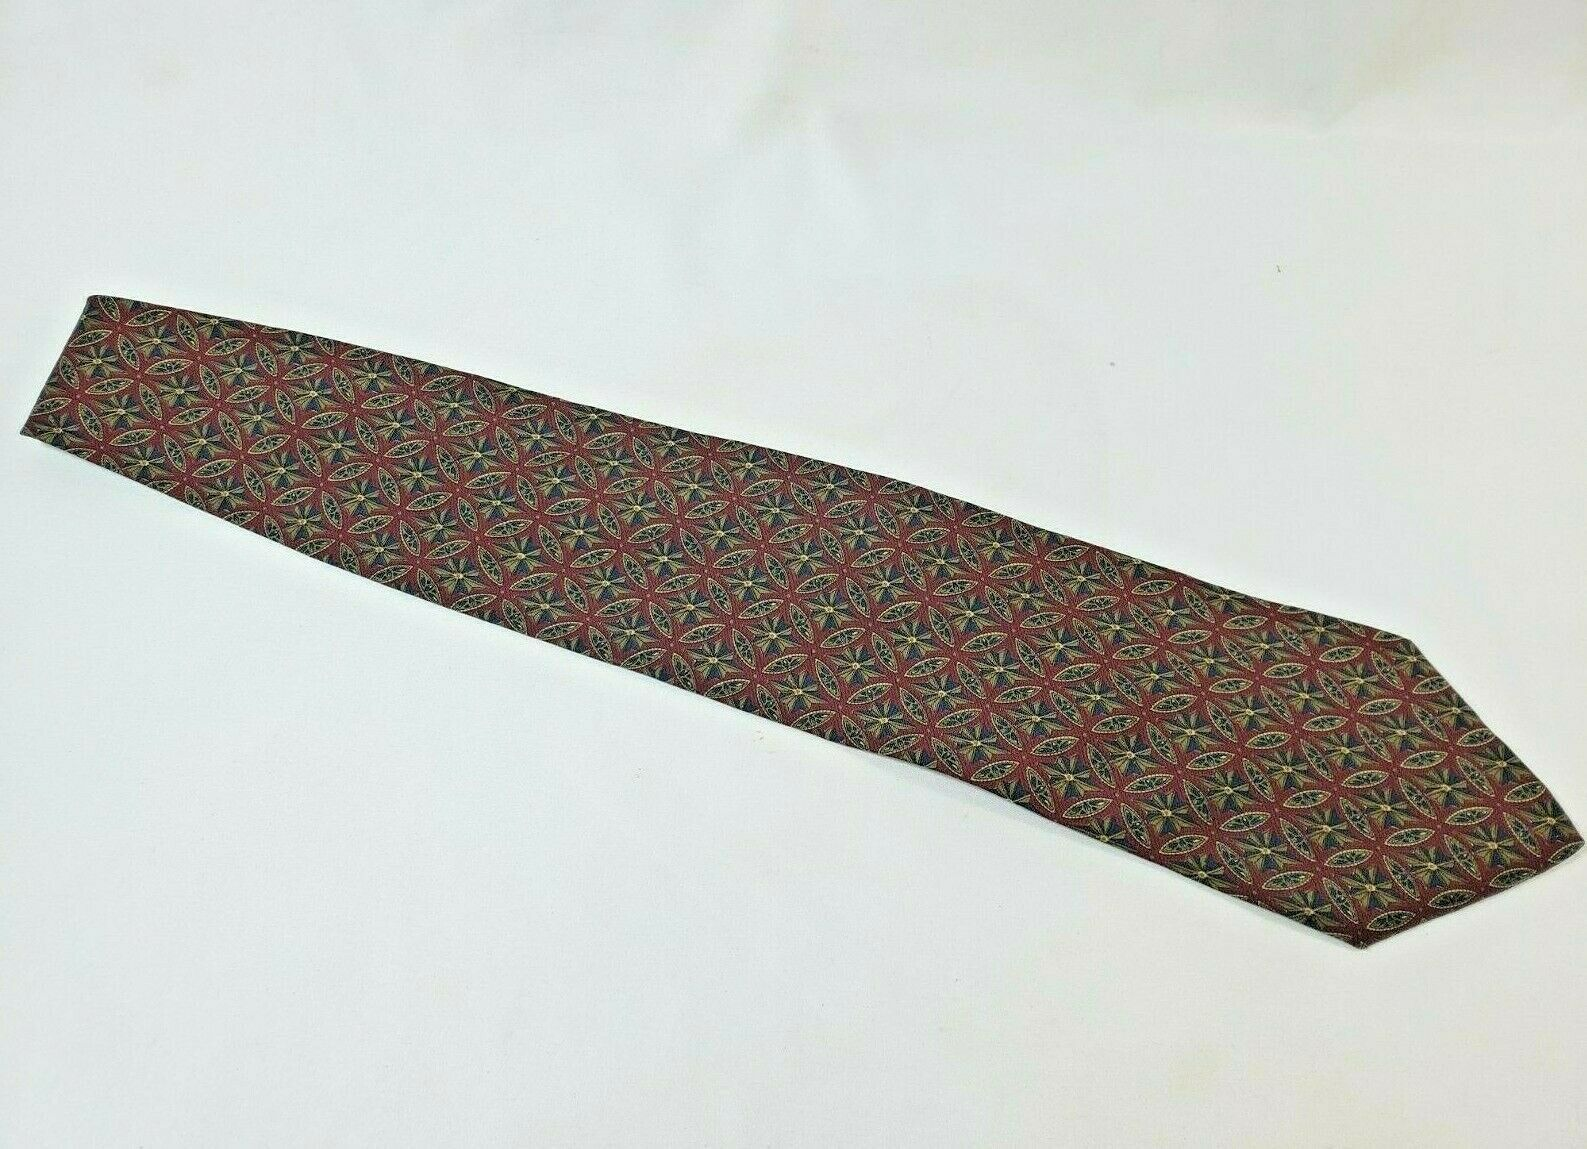 Calvin Klein SILK Burgundy Men's One Size Paisley Pattern Neck Tie - Made in USA - $12.61